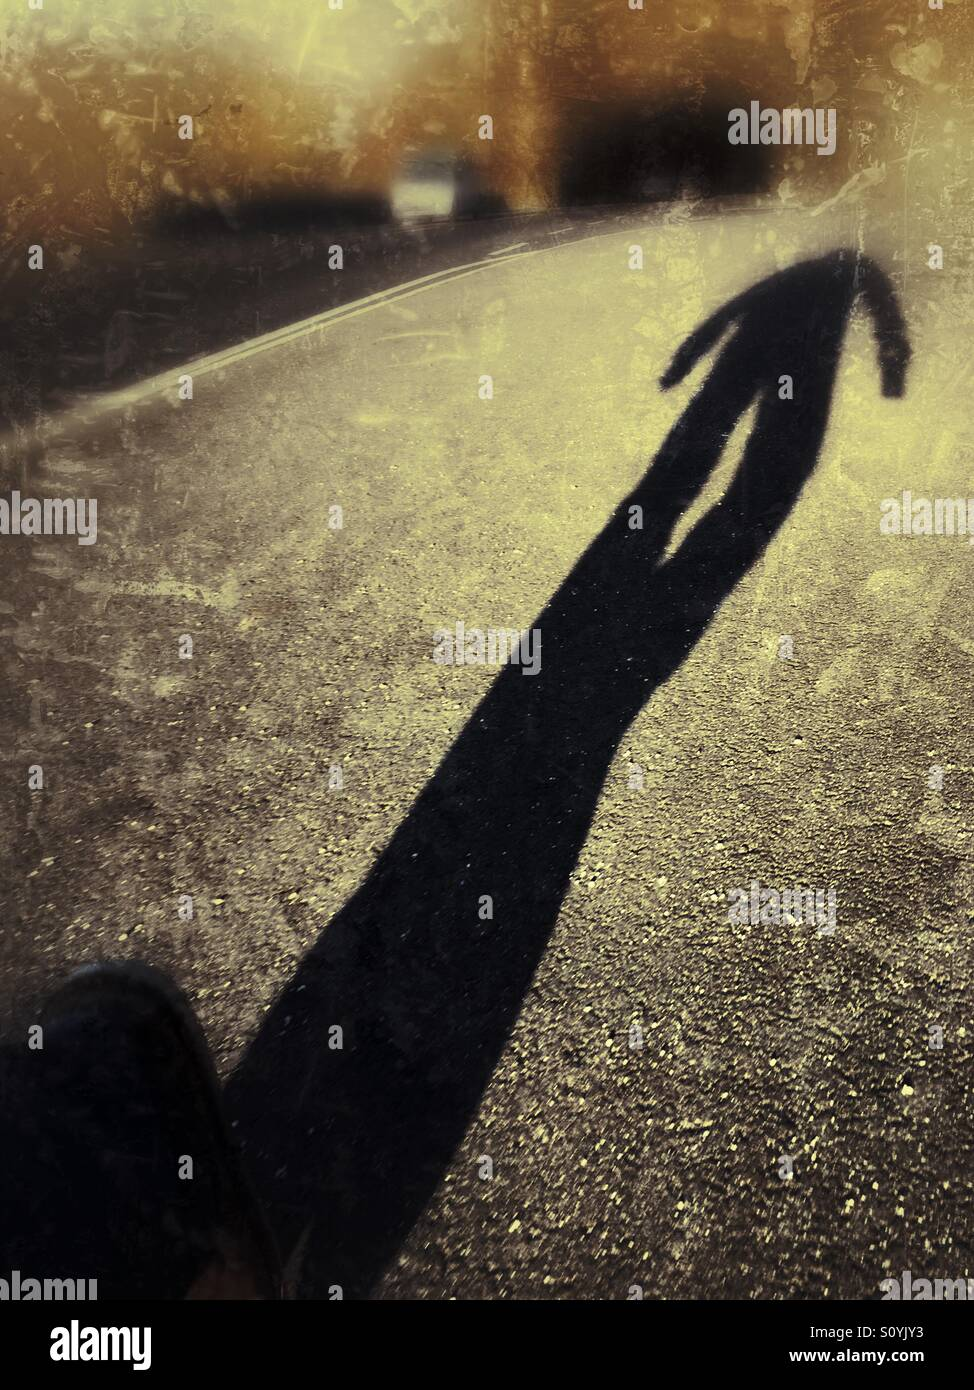 The long shadow of a man walking down a road. Stock Photo